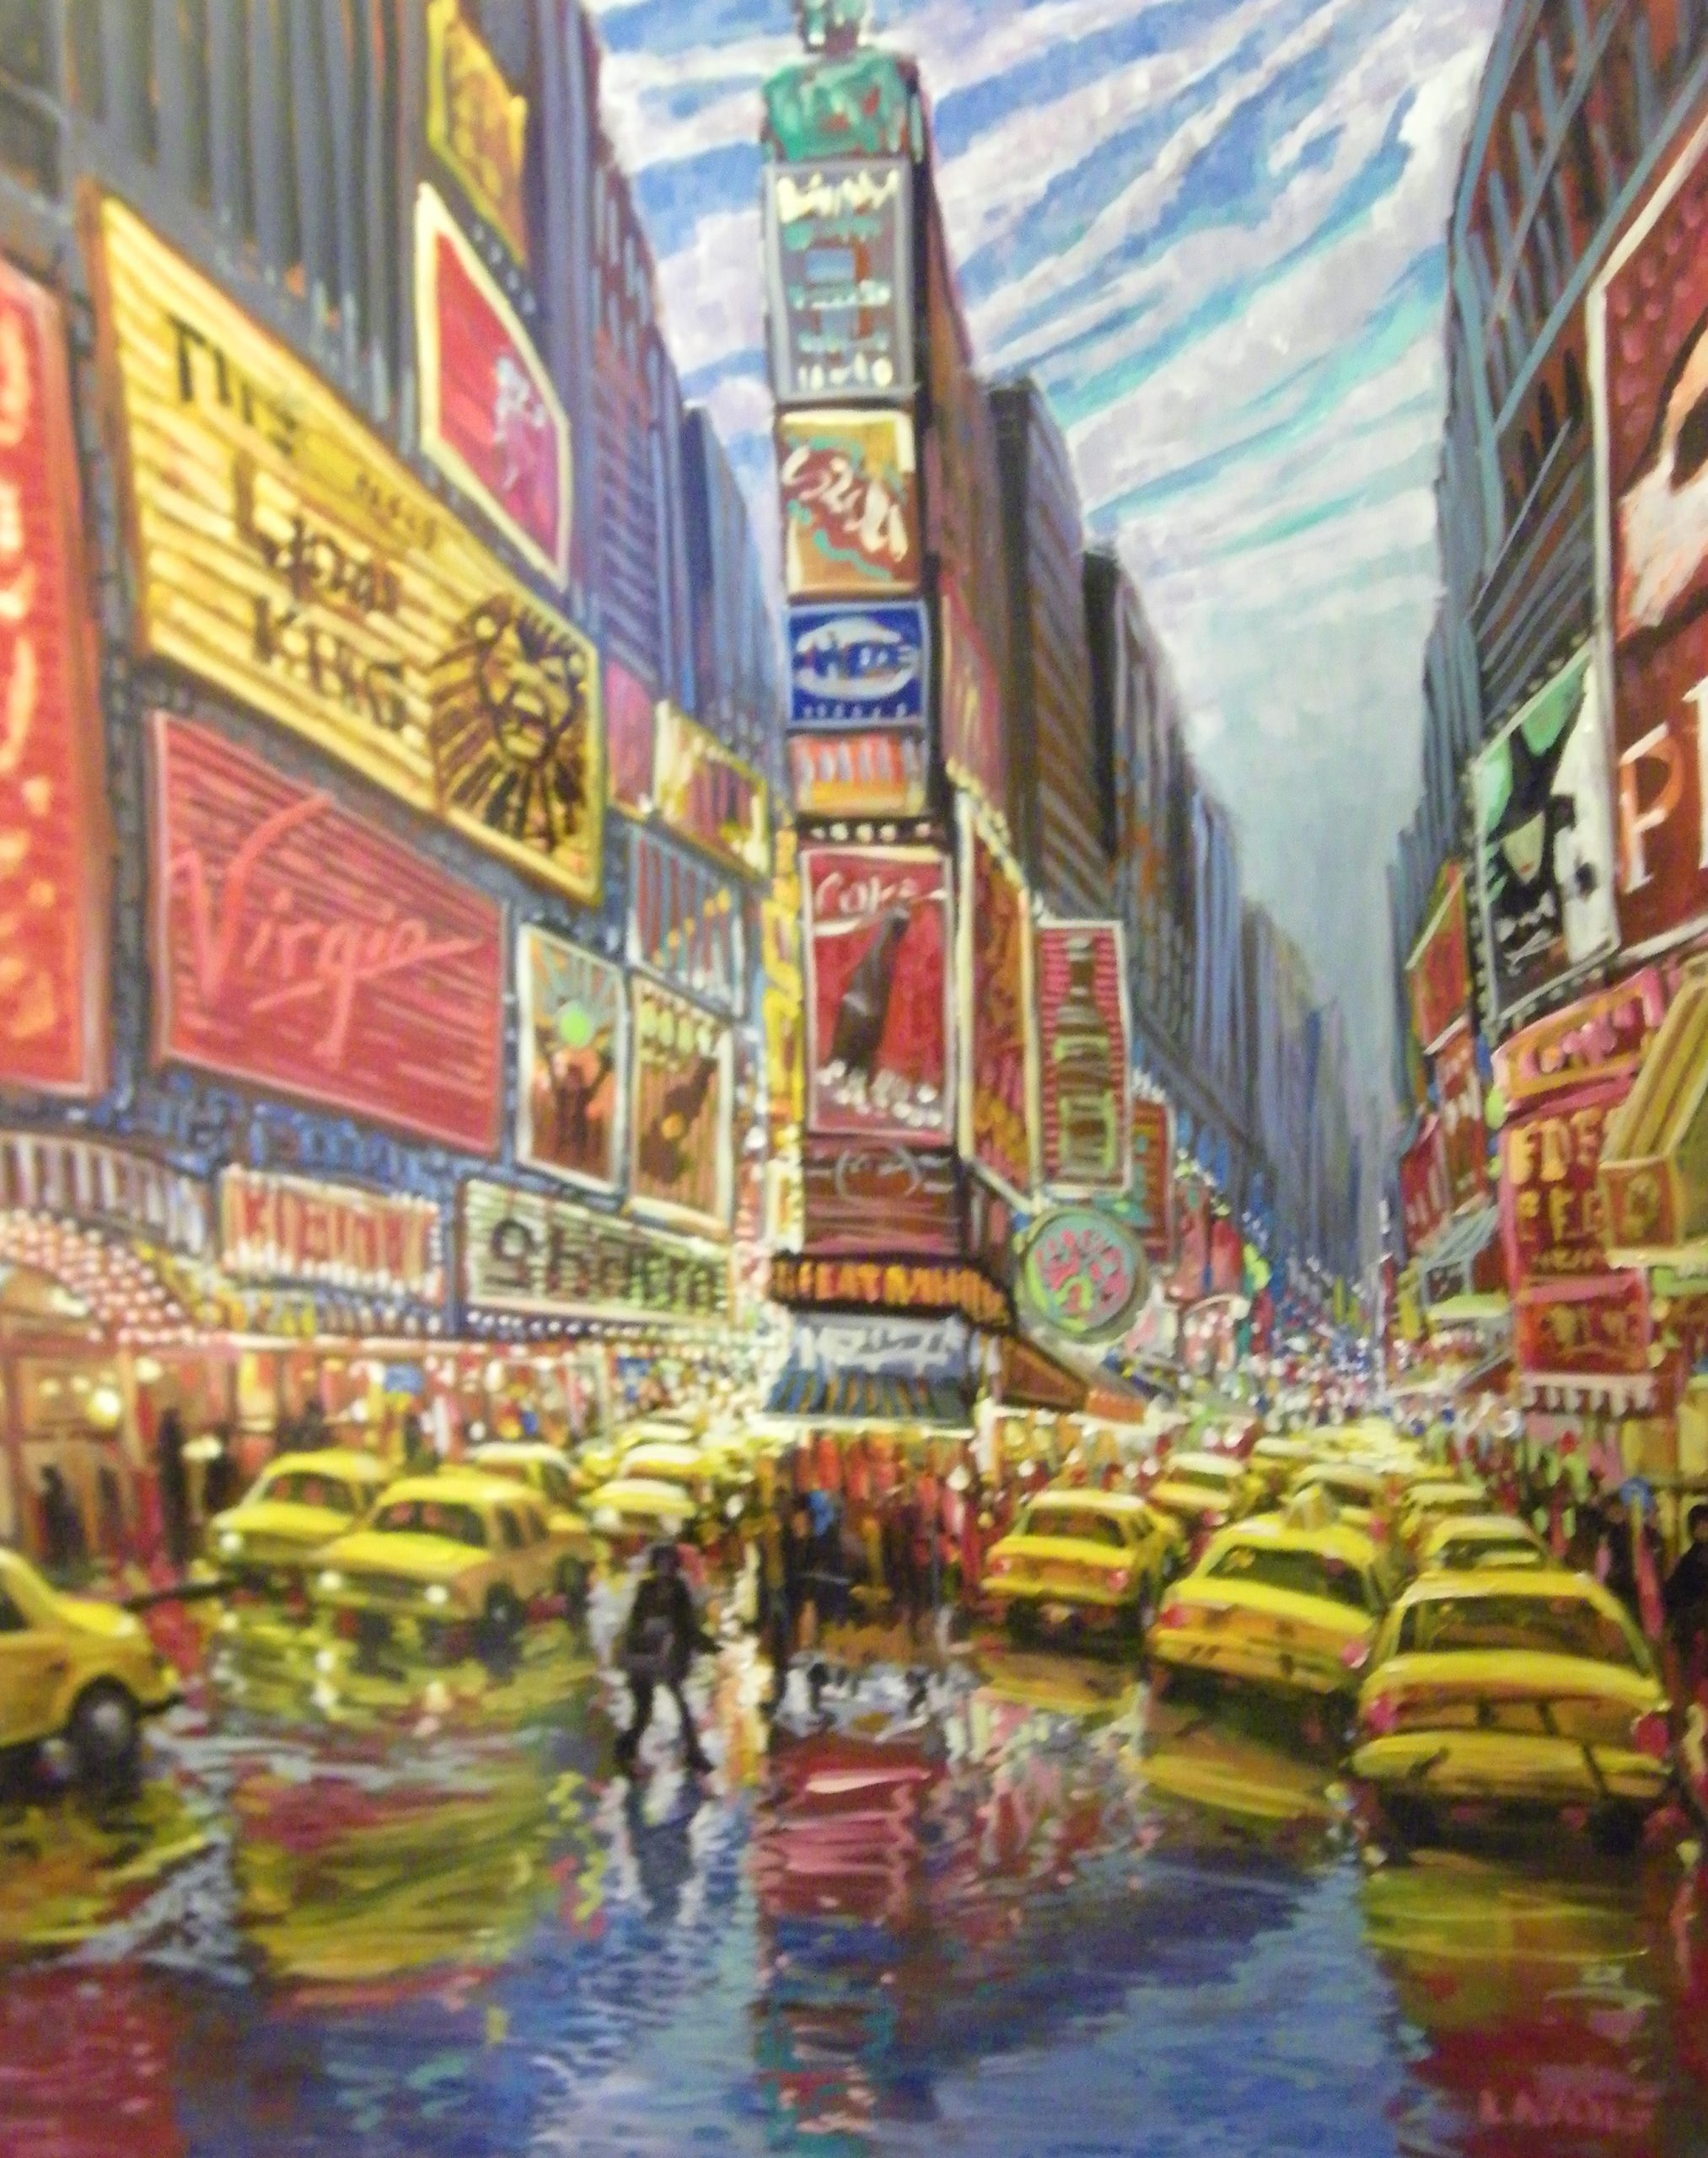 Time Square Street Scene live art